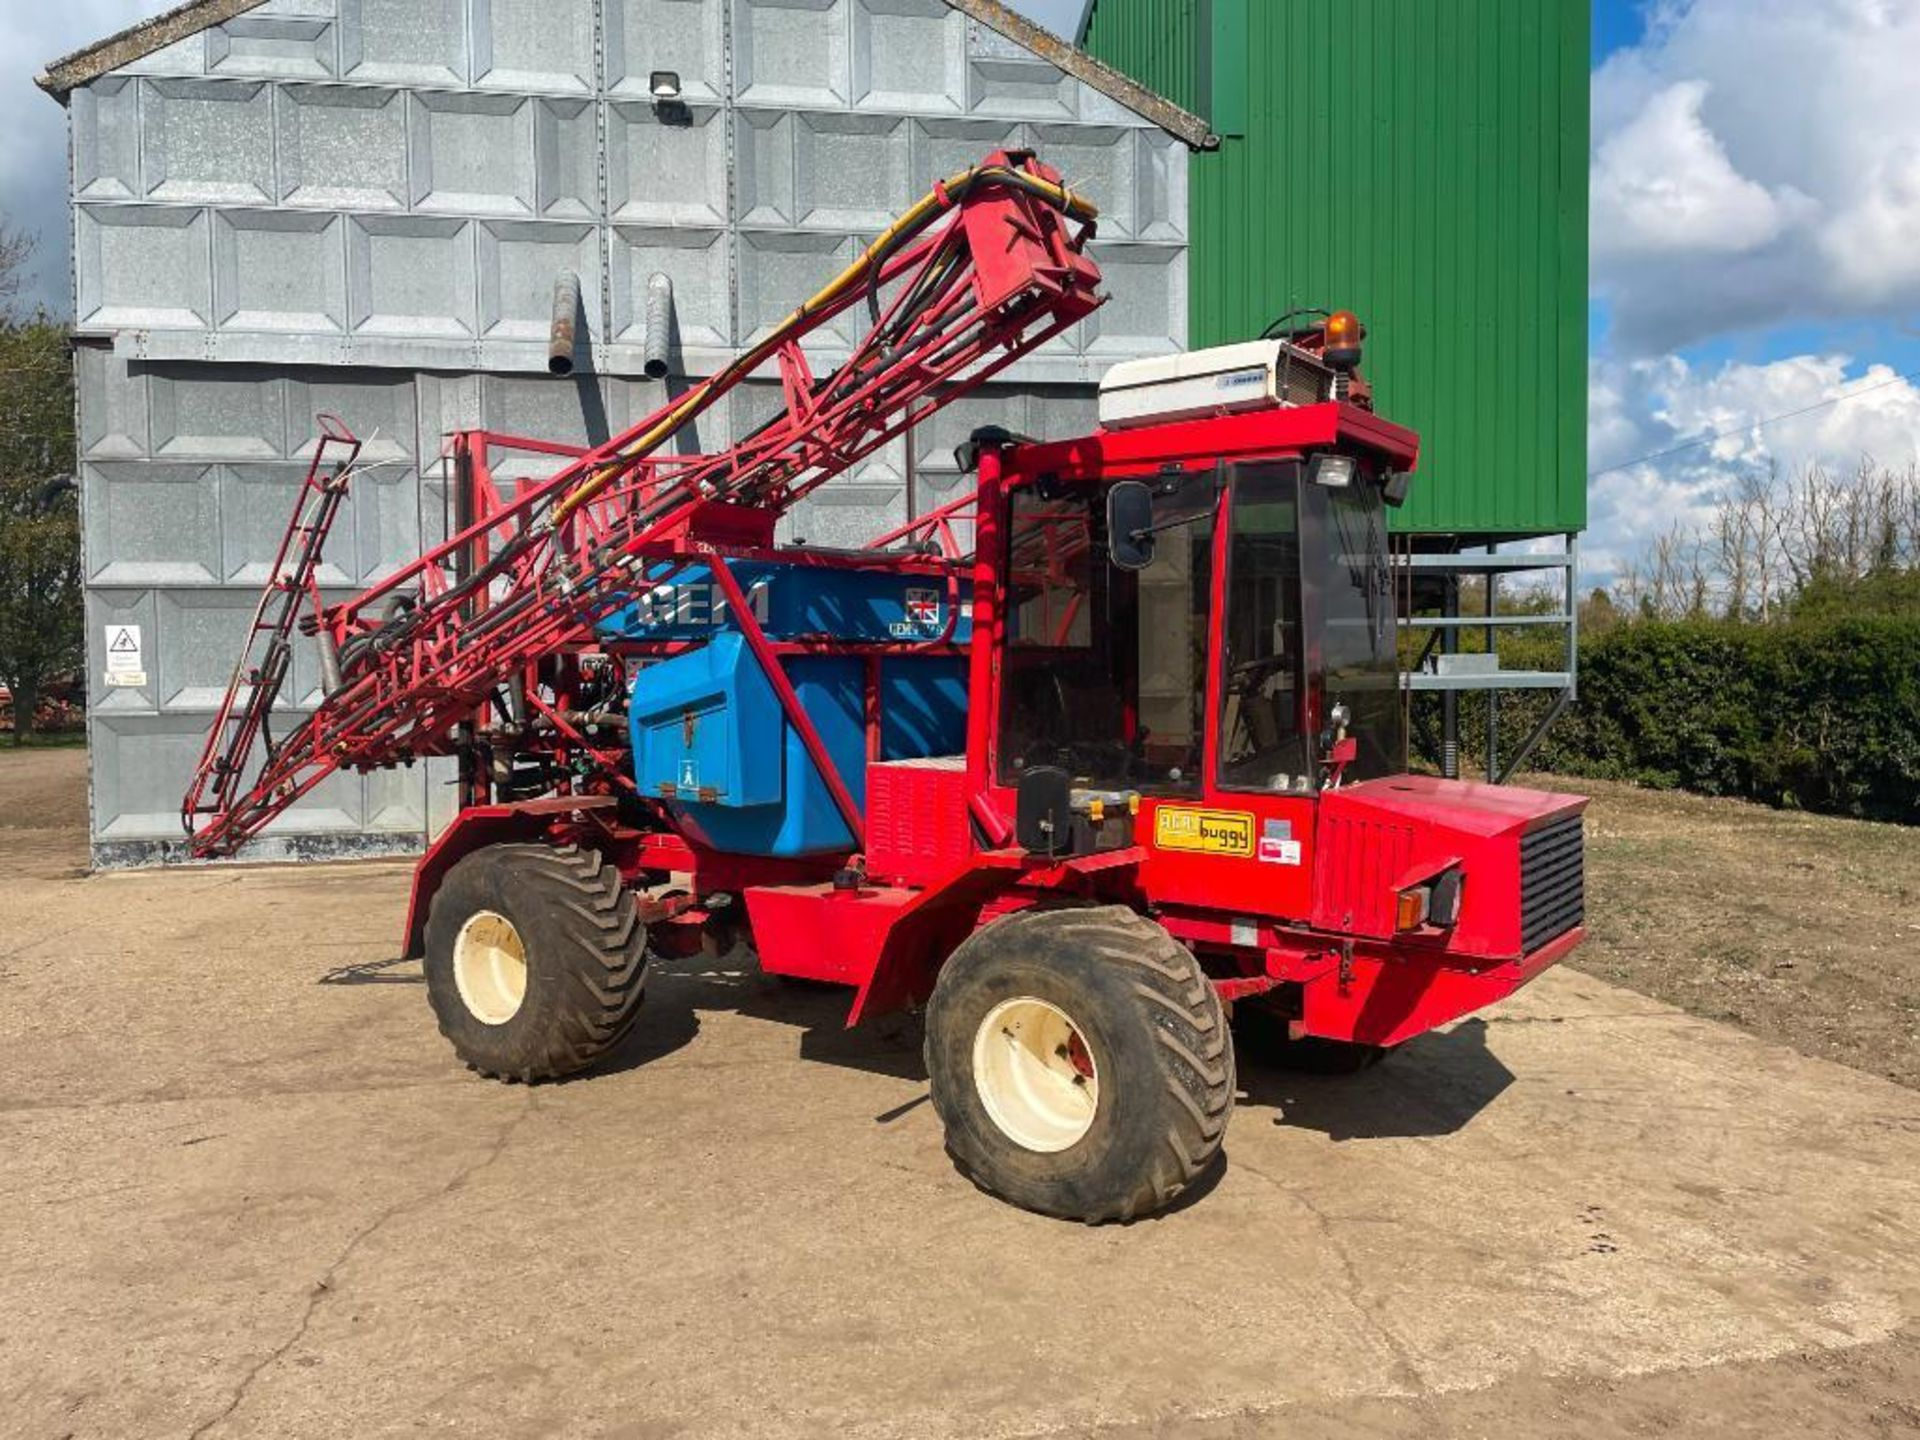 1995 Frazier Agri-Buggy SD with GEM 24m self propelled sprayer, 1500l tank on 38x20.00-16 wheels and - Image 23 of 27